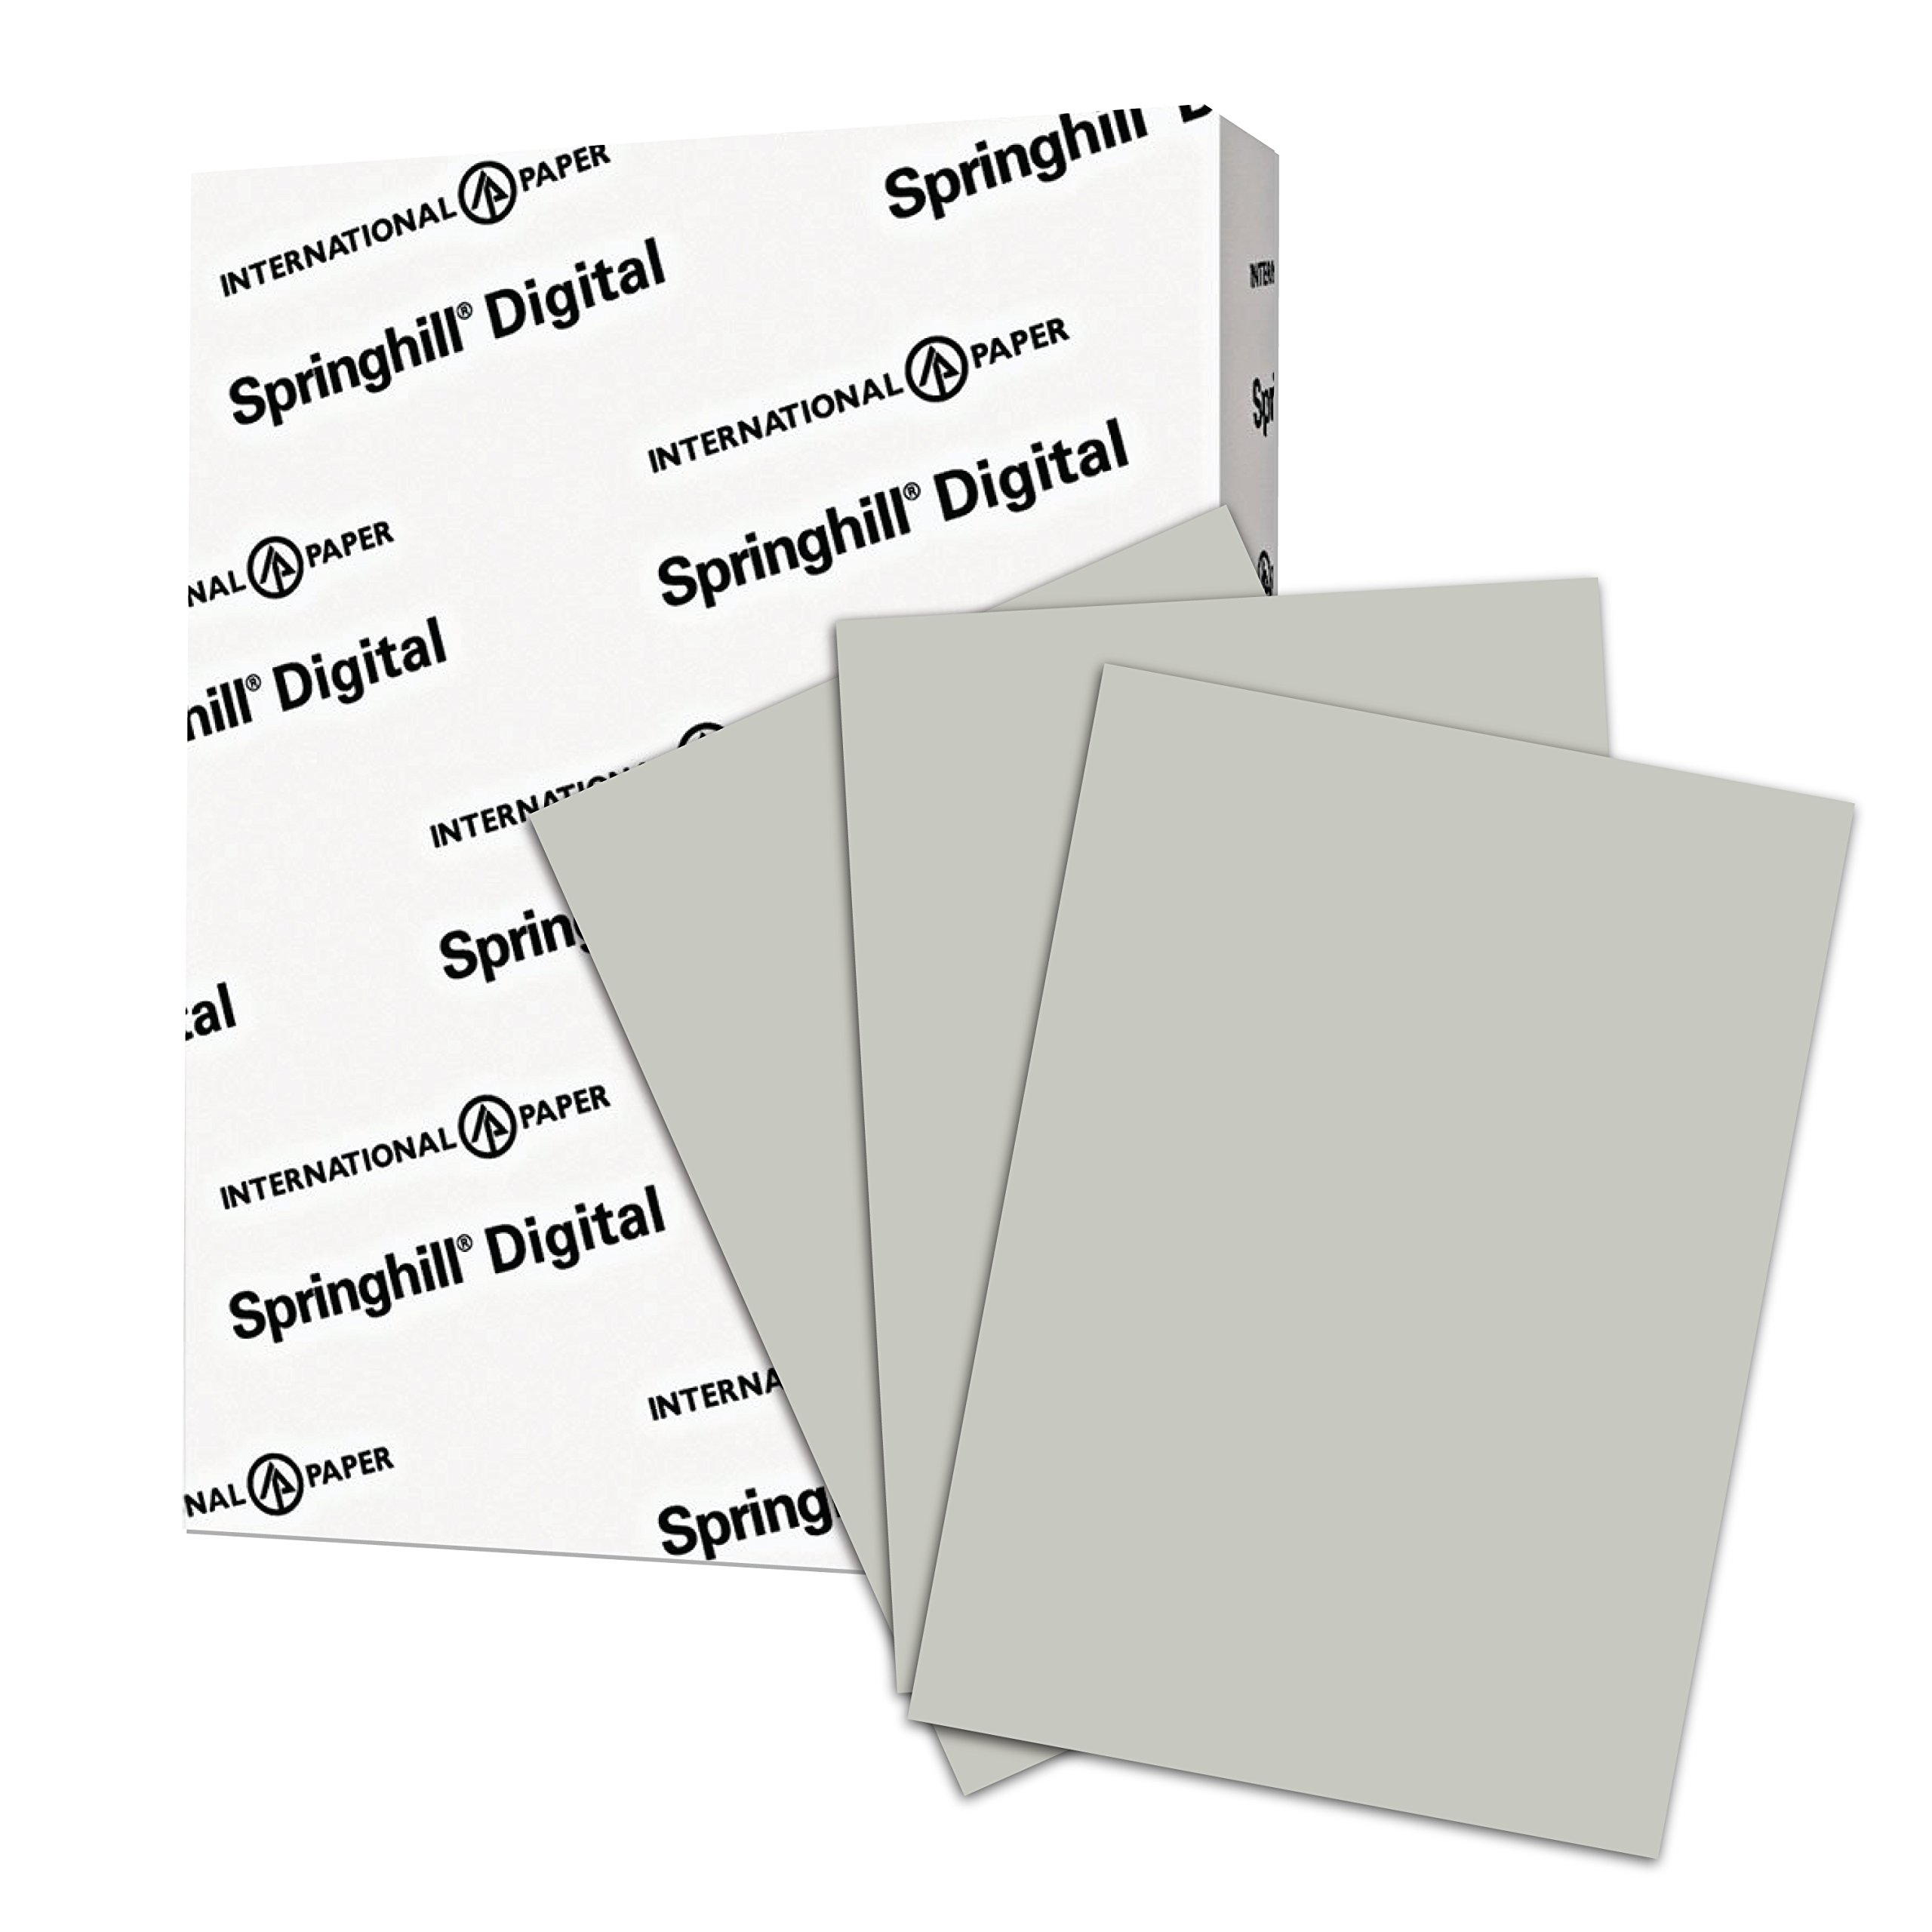 Springhill Colored Paper, Cardstock Paper, Gray Paper, 67lb, 147gsm, 8.5 x 11, 1 Ream / 250 Sheets - Vellum Card Stock, Thick Paper (066000R)